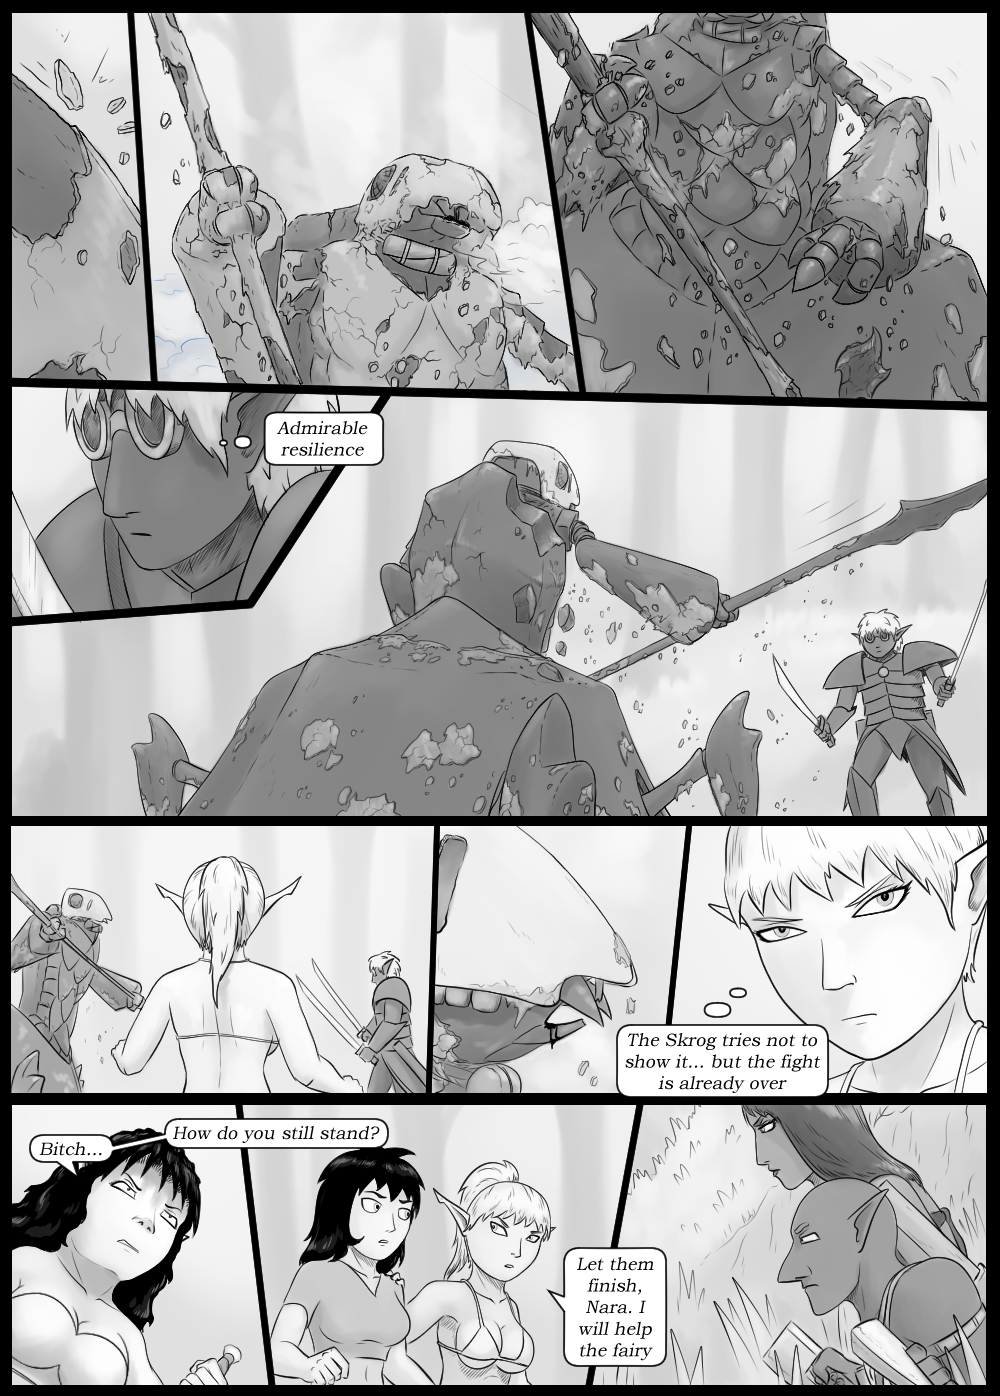 Page 101 - Not Done yet